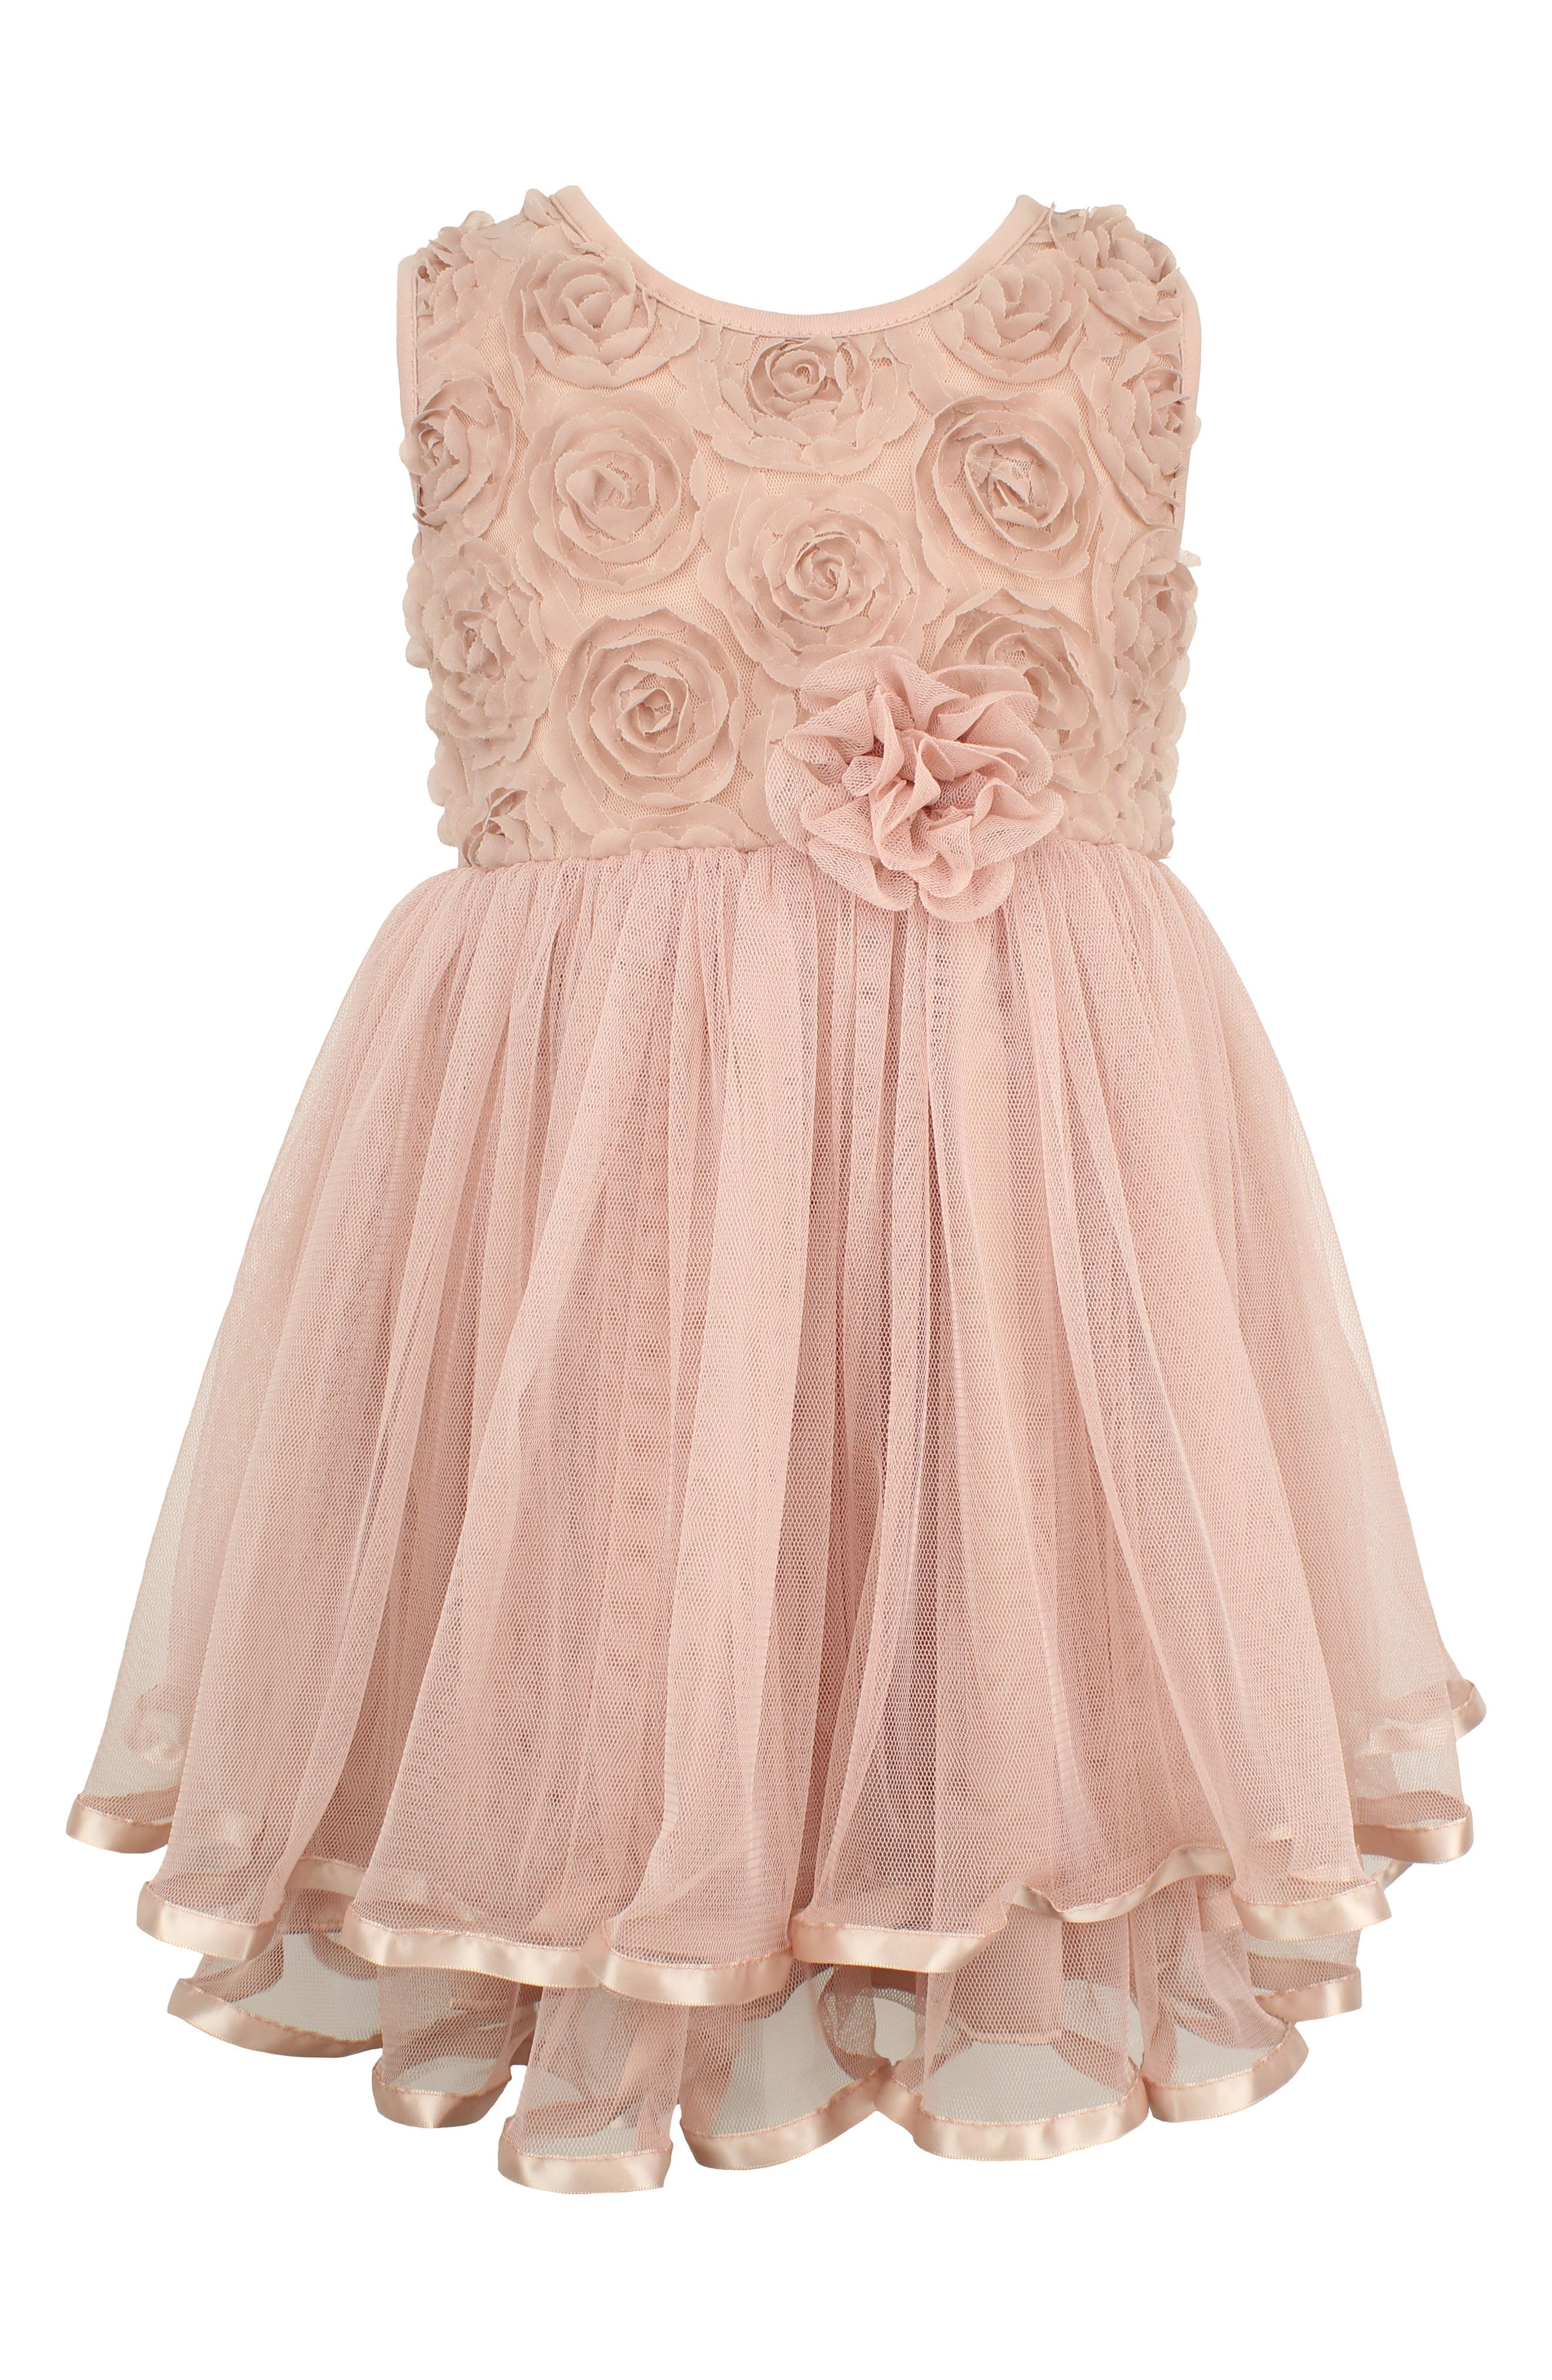 Rosette Tulle Dress,                             Main thumbnail 1, color,                             DUSTY PINK